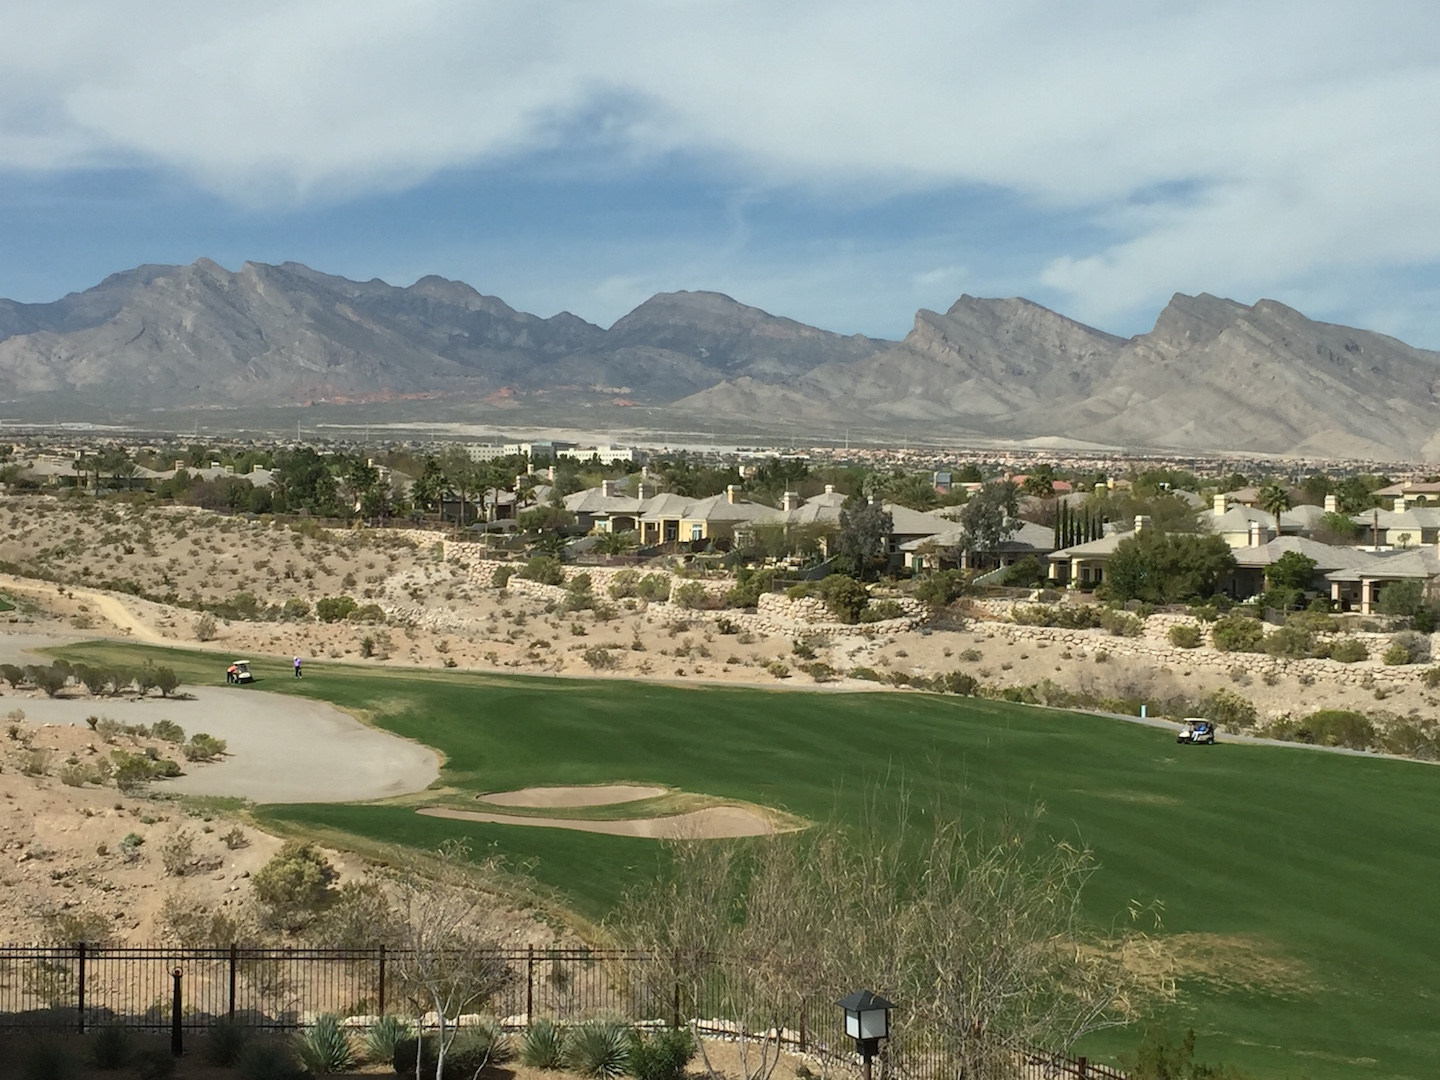 Mira-Villa-Las-Vegas-Luxury-Condos-For-Sale-In-Summerlin